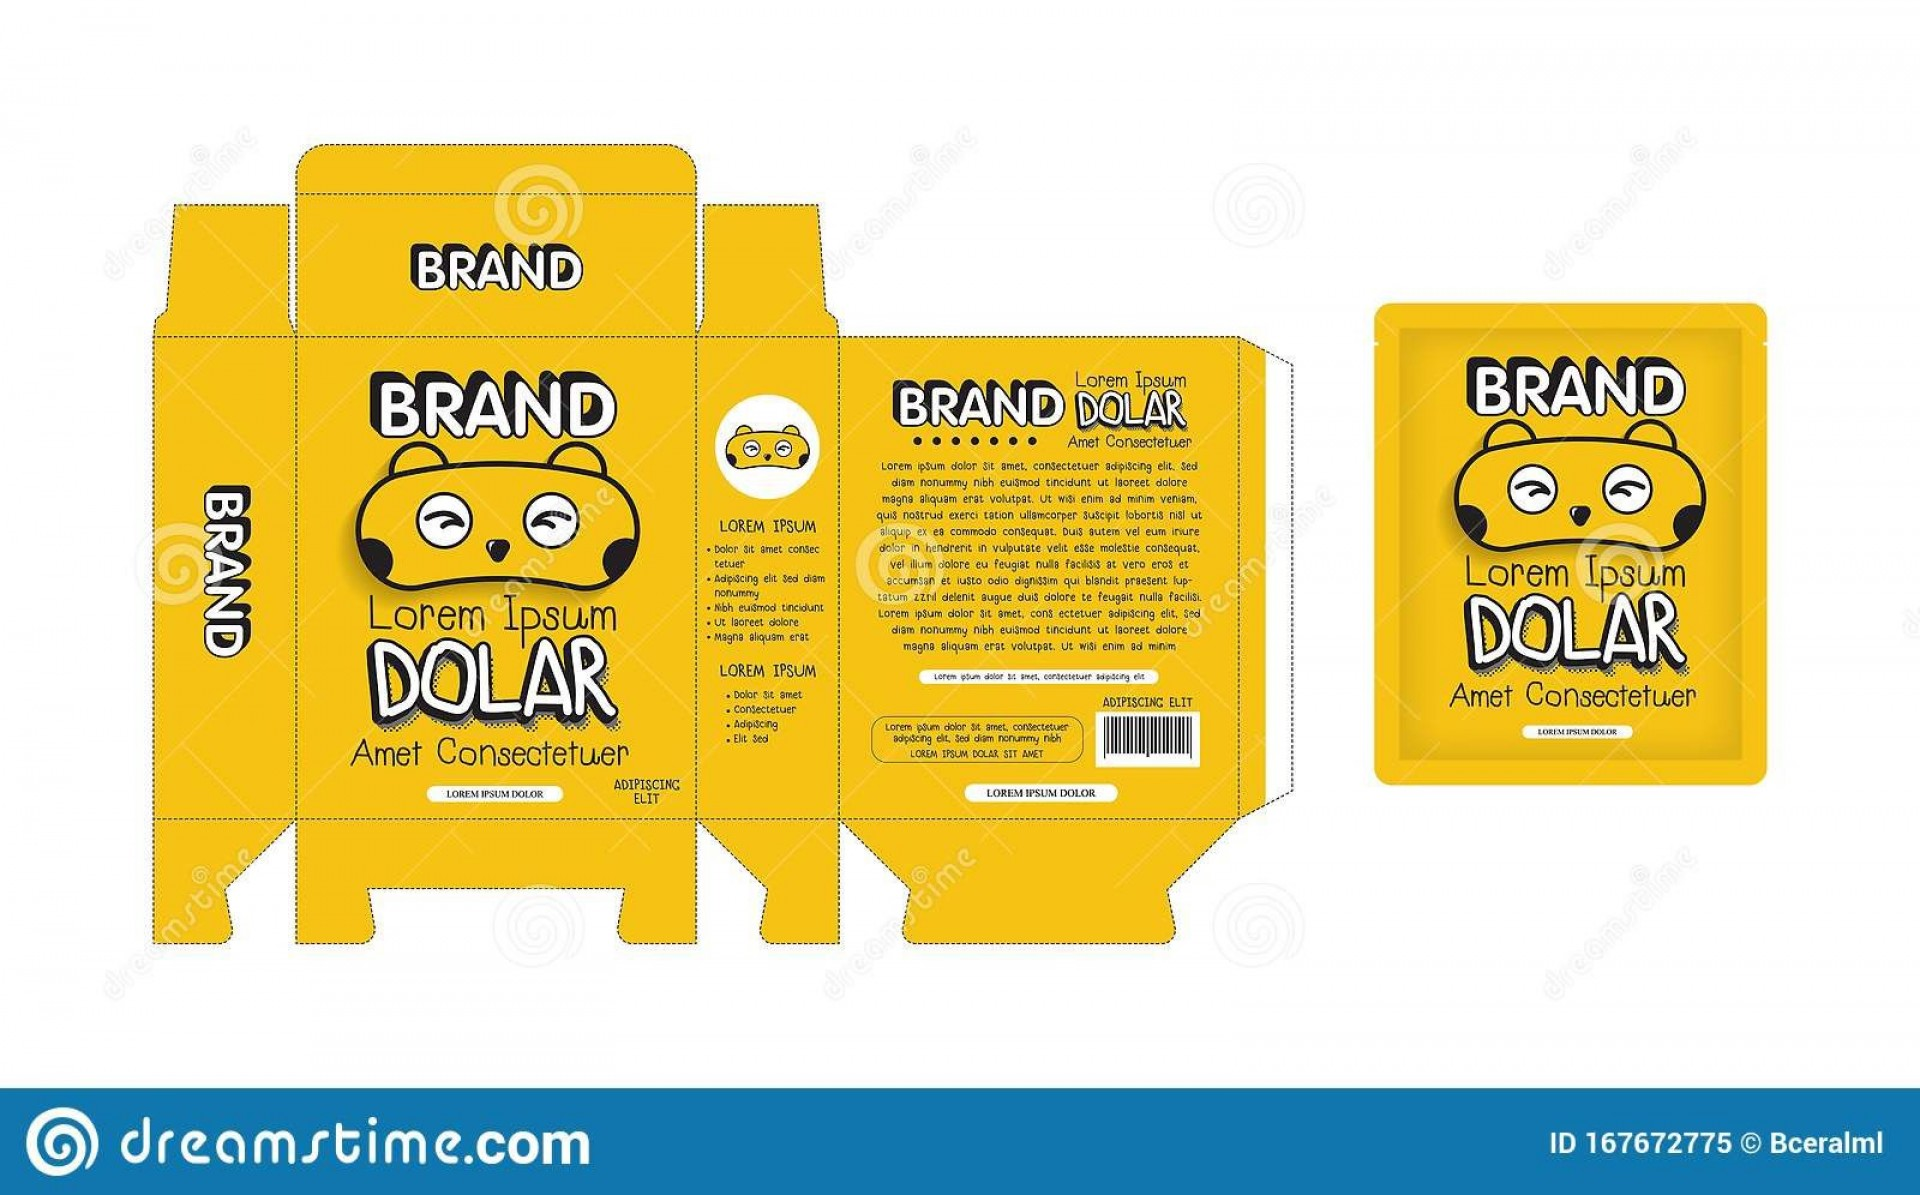 009 Formidable Product Packaging Design Template Picture  Templates Free Download Sample1920